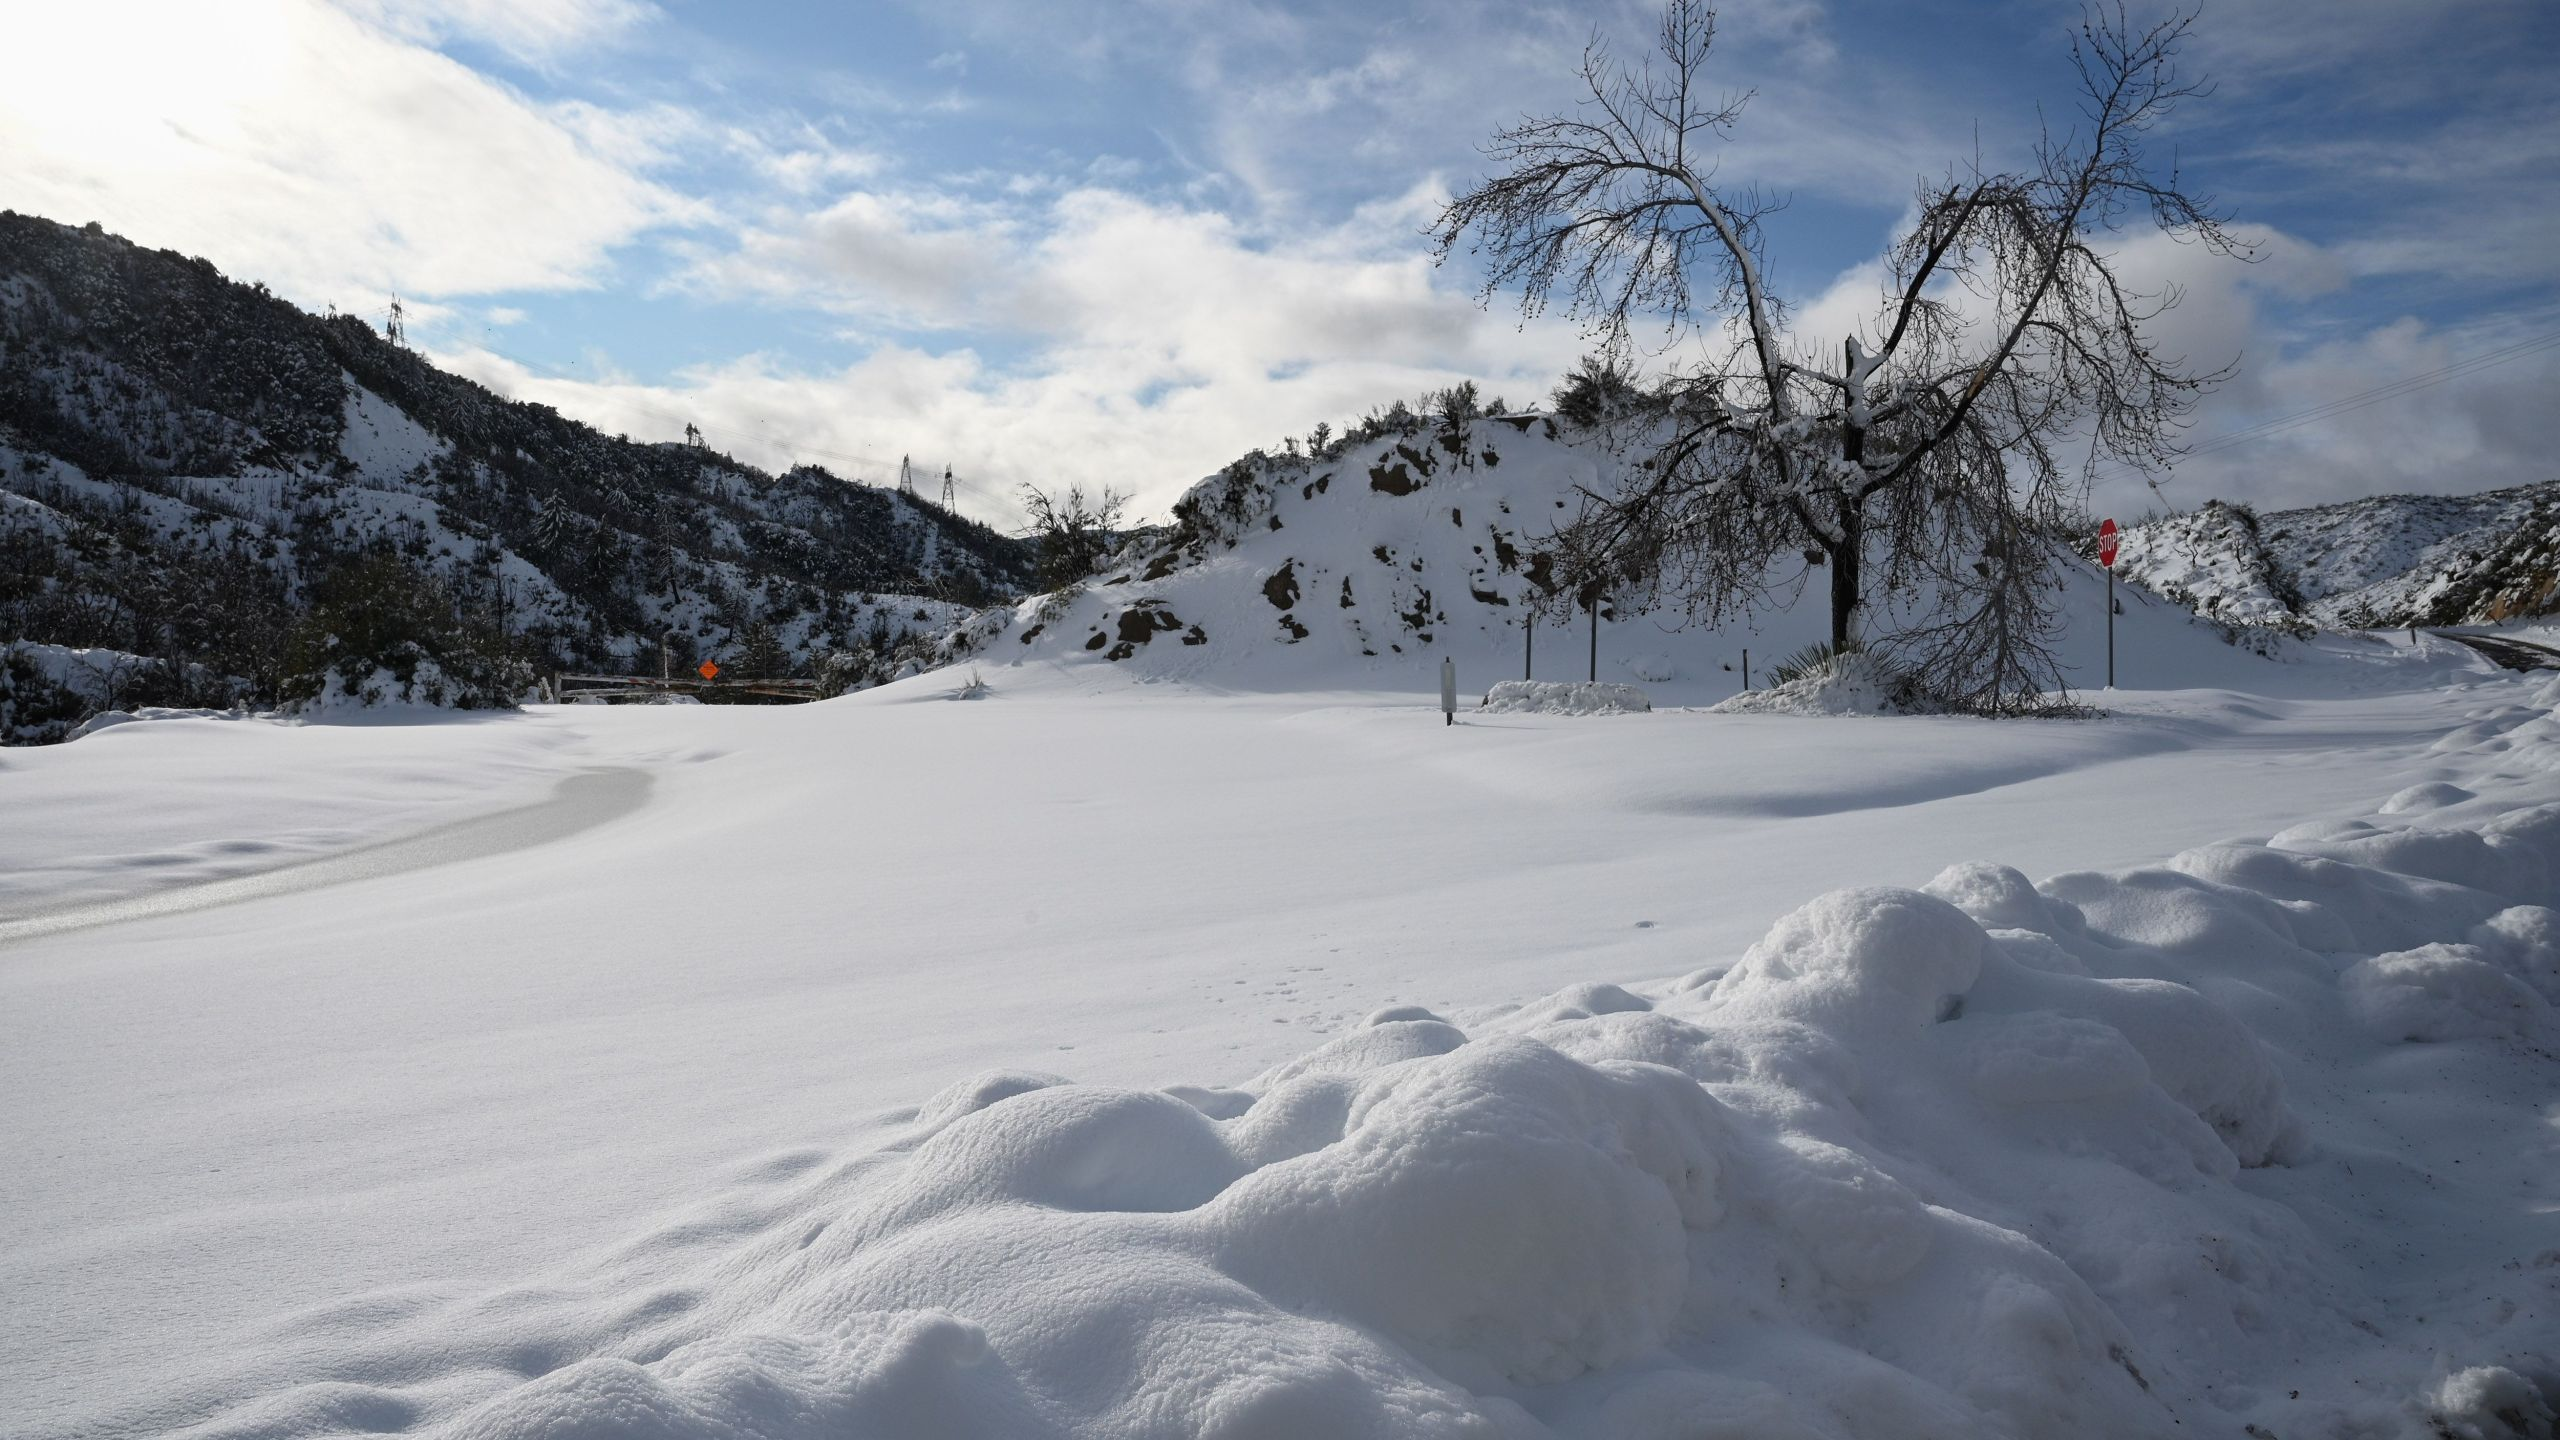 Snow blankets the Angeles National Forest north of Los Angeles, California Dec. 26, 2019. (Credit: Robyn Beck / Getty)